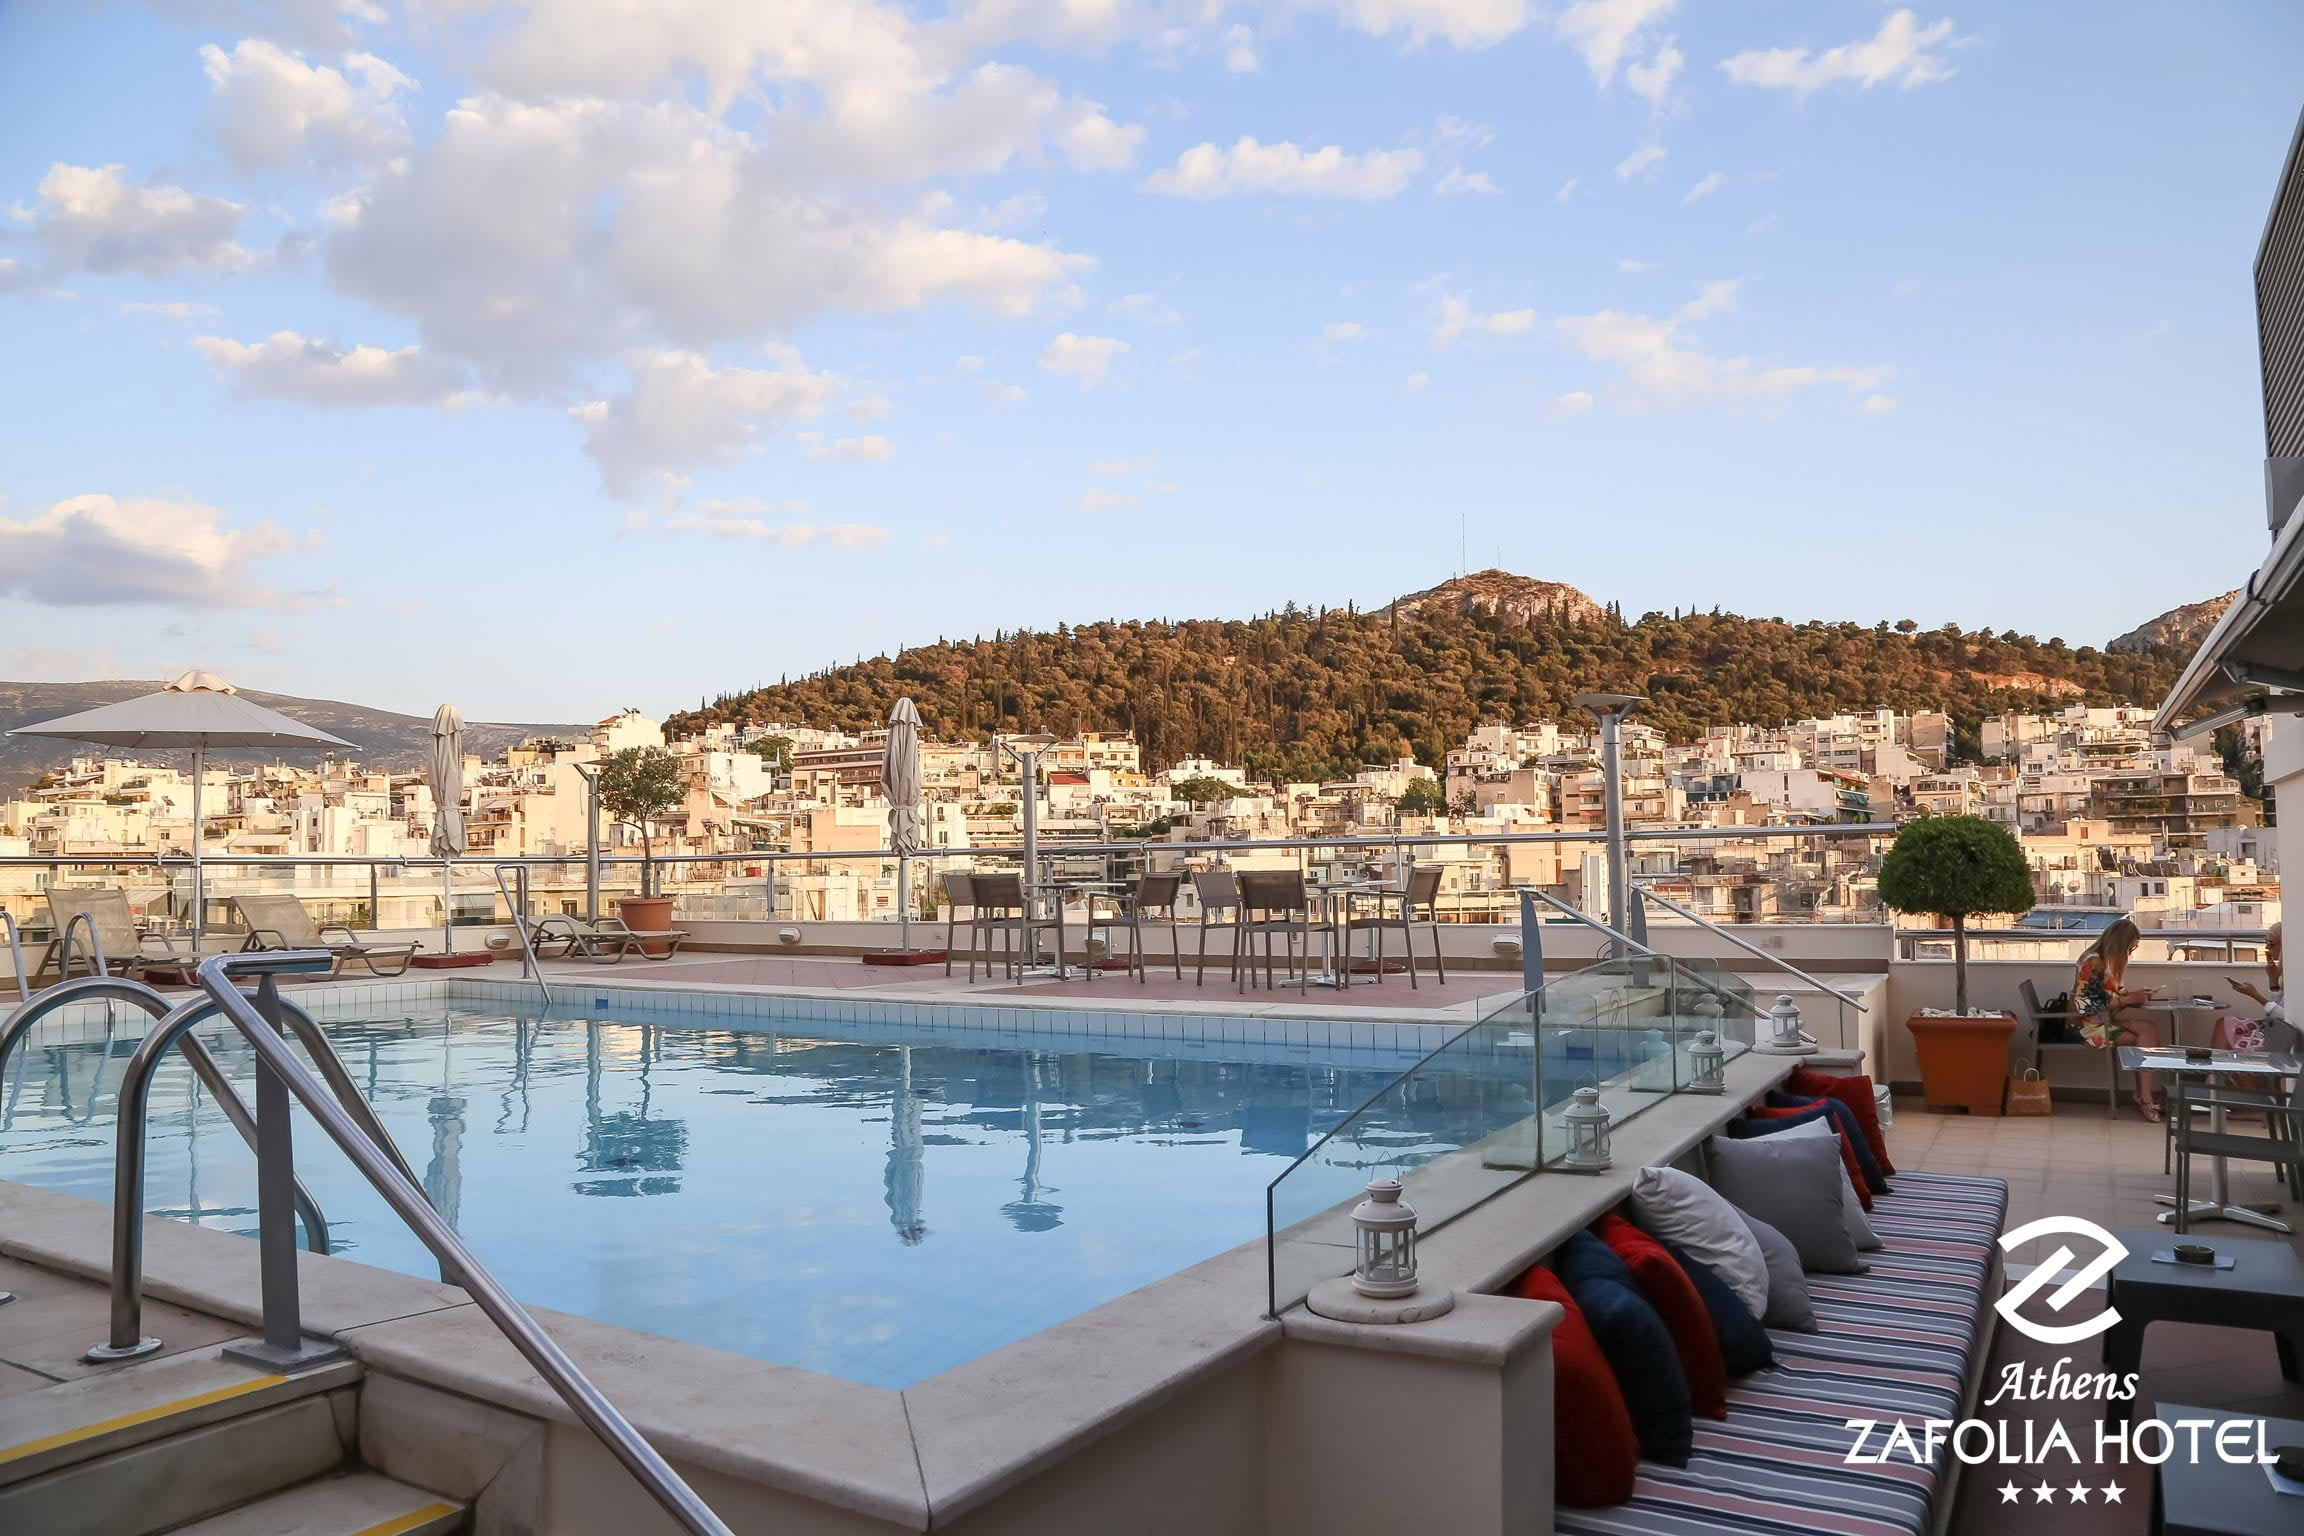 Athens Zafolia Hotel Official Website